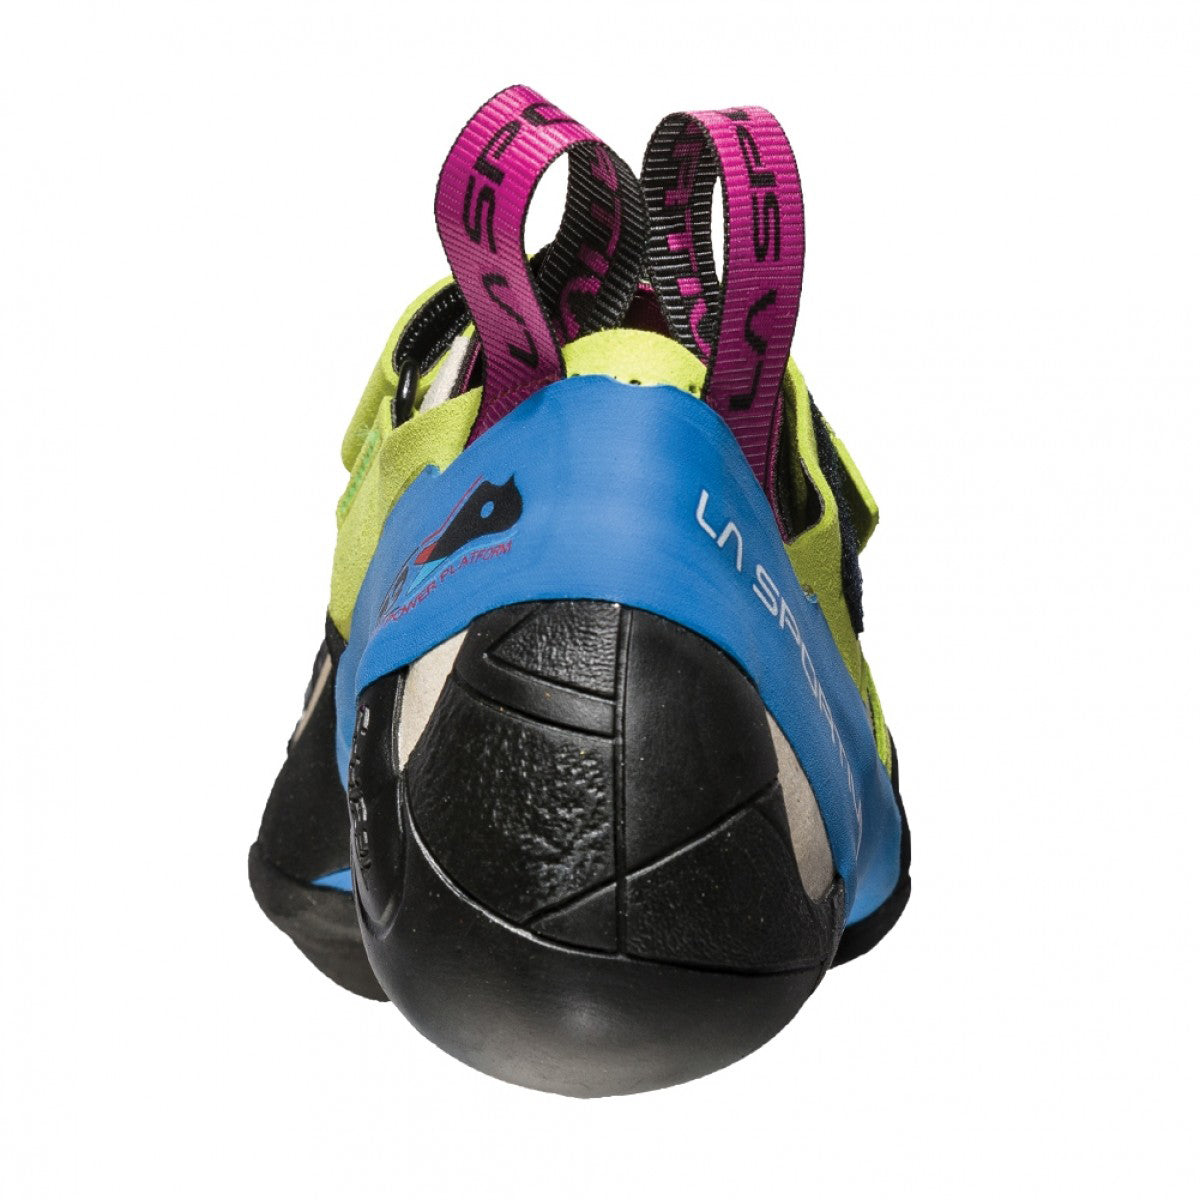 La Sportiva Skwama Women's rock climbing shoe, demonstrating S-heel as seen from the rear.